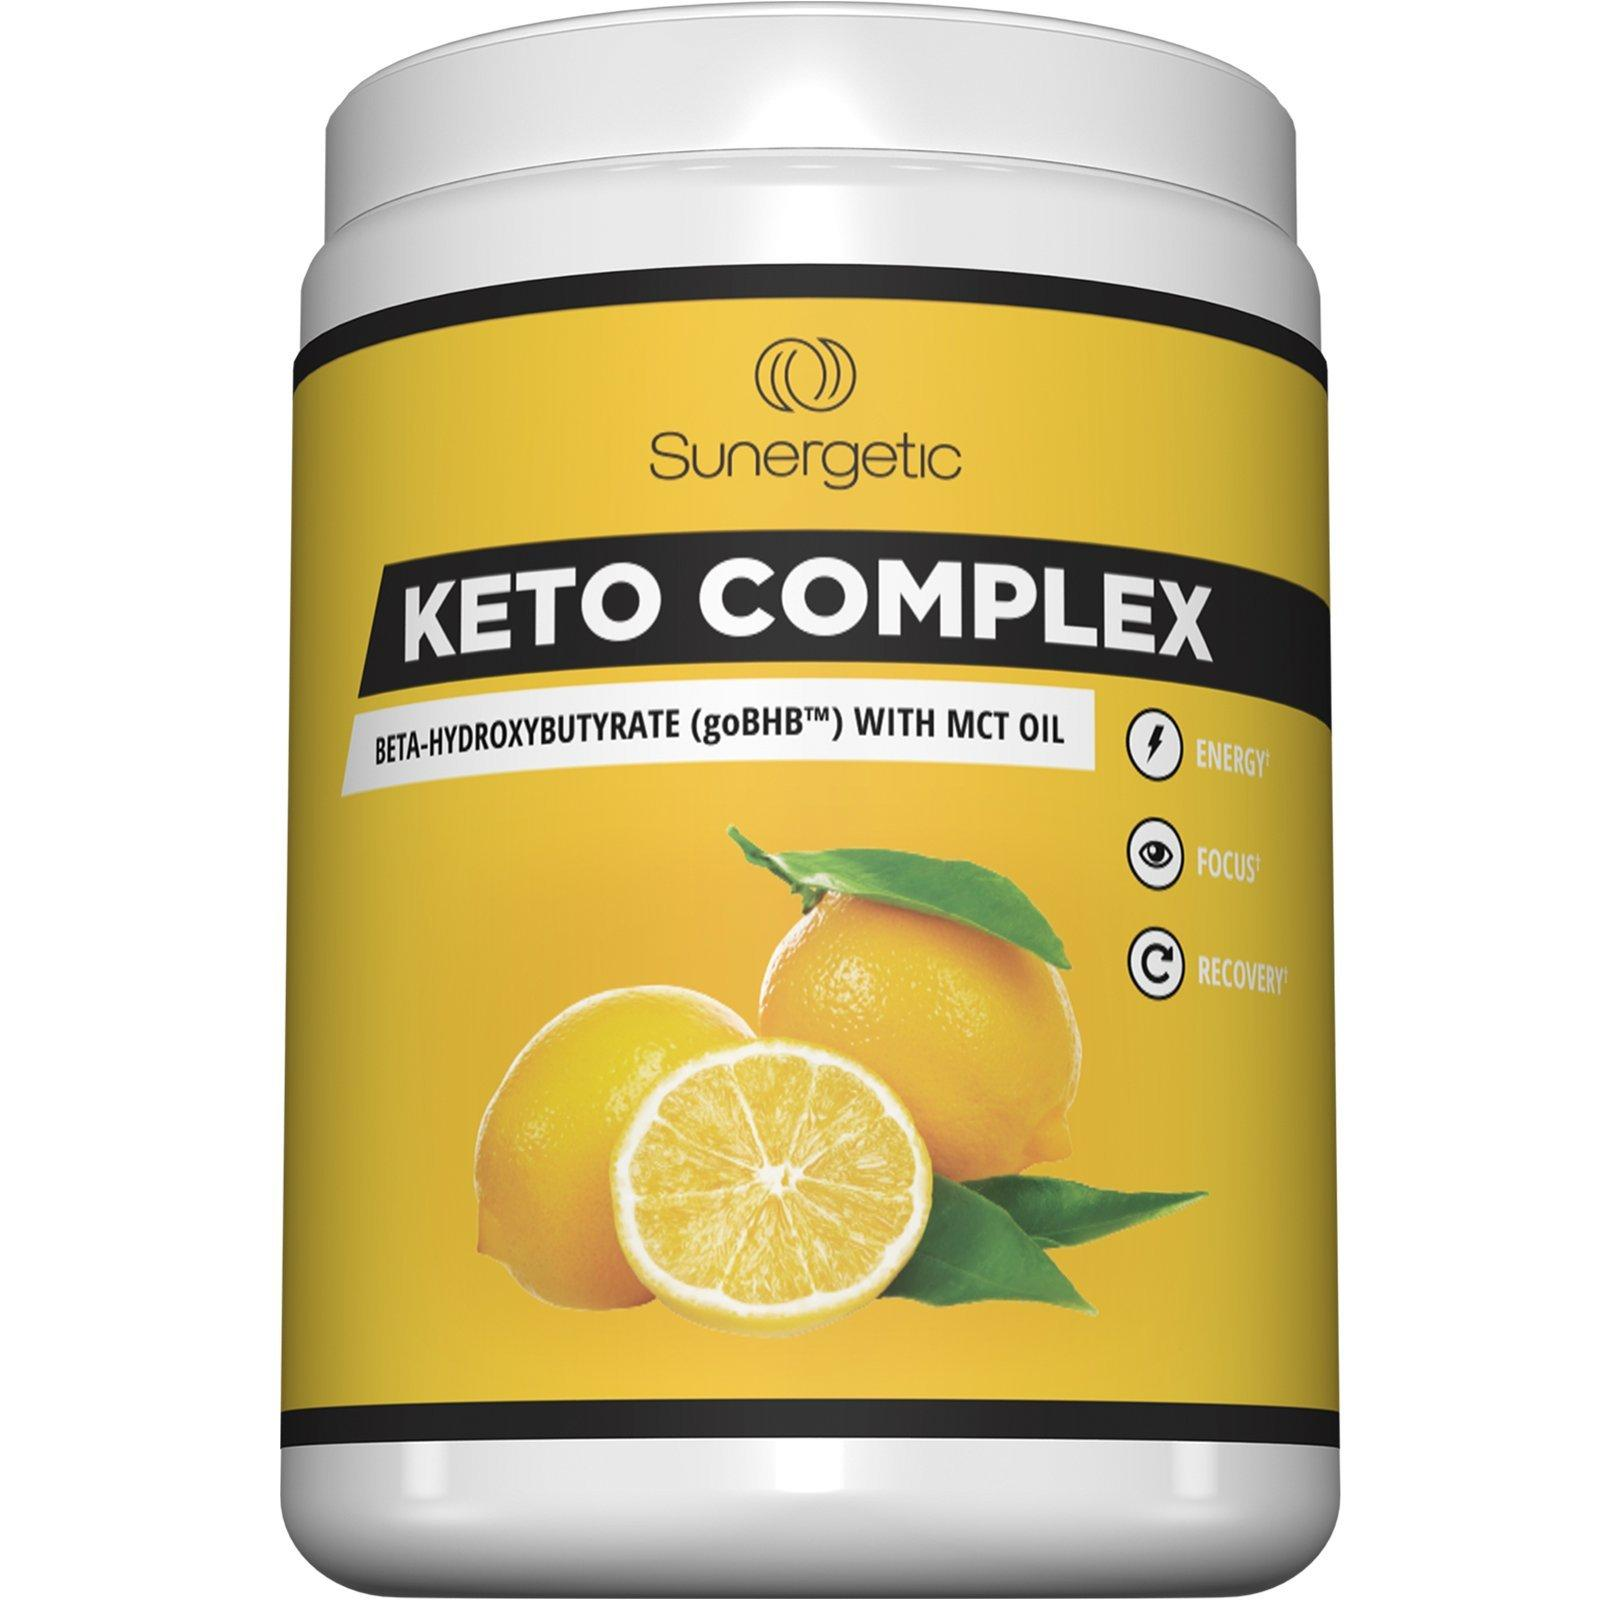 Sunergetic Keto Complex - Premium Exogenous Ketones BHB Salts with MCT Oil Supplement